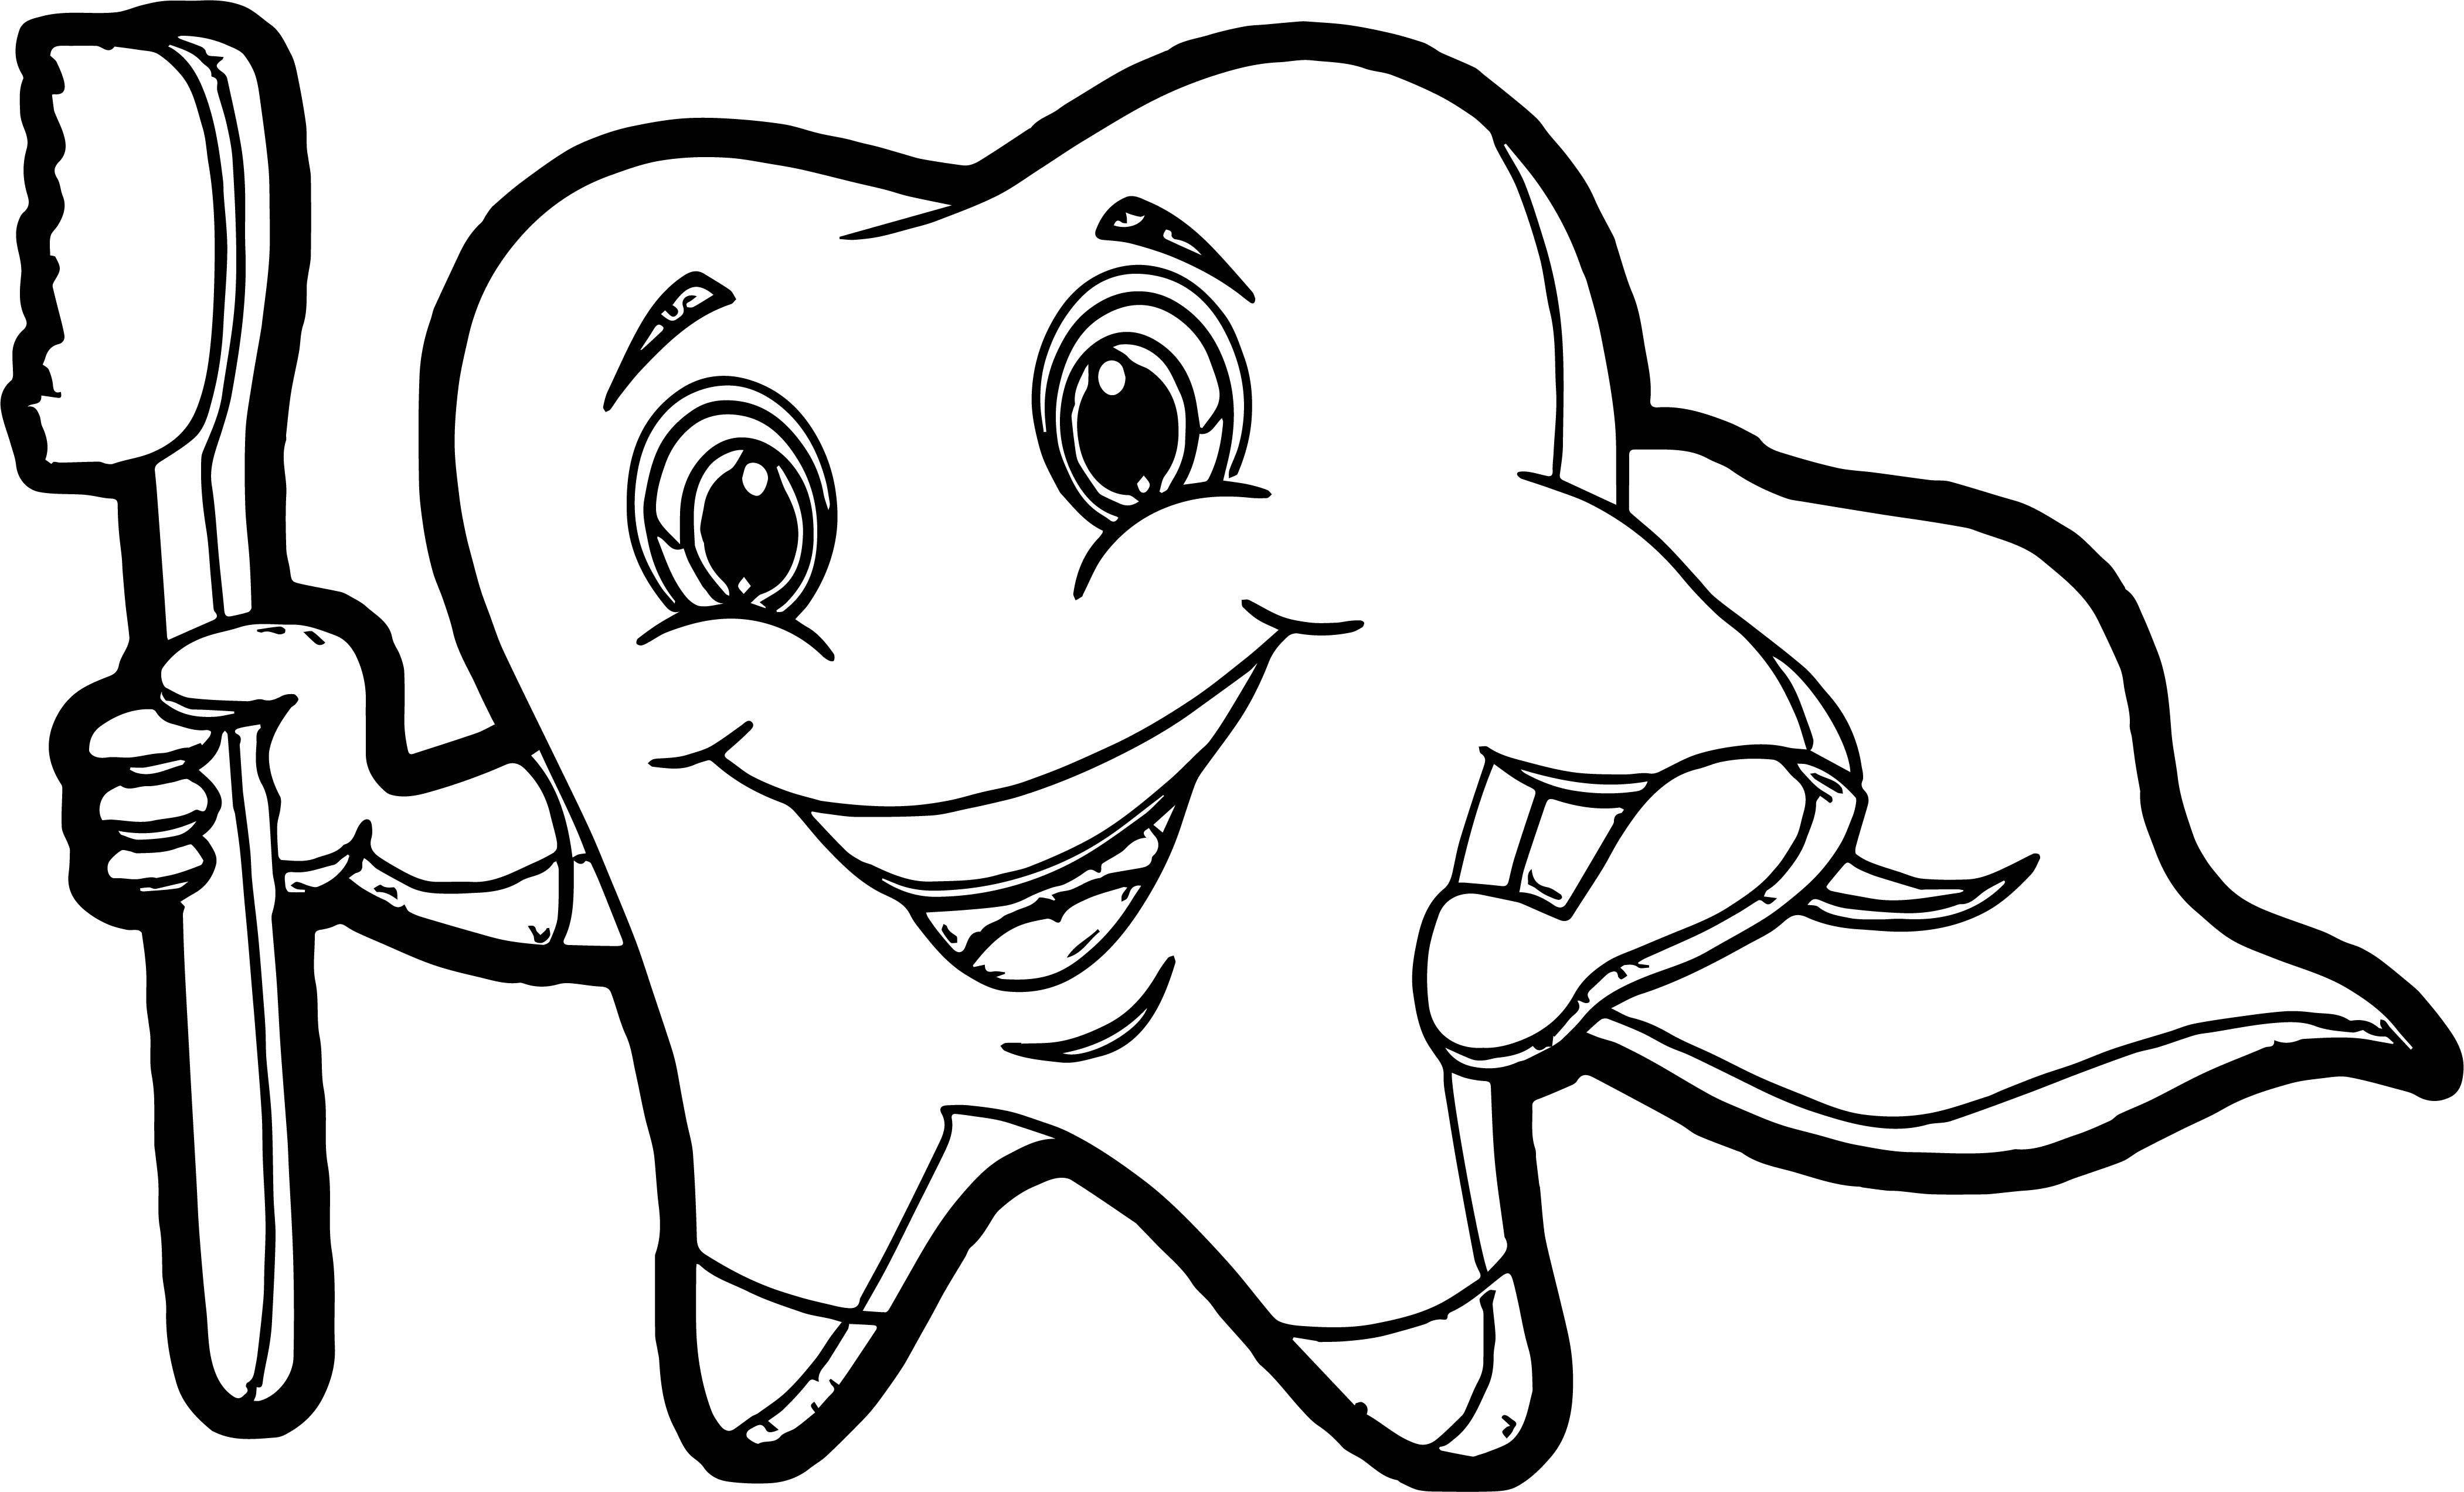 Tooth Cartoon Pictures Of Teeth Coloring Page Tooth Cartoon Cartoon Pics Coloring Pages